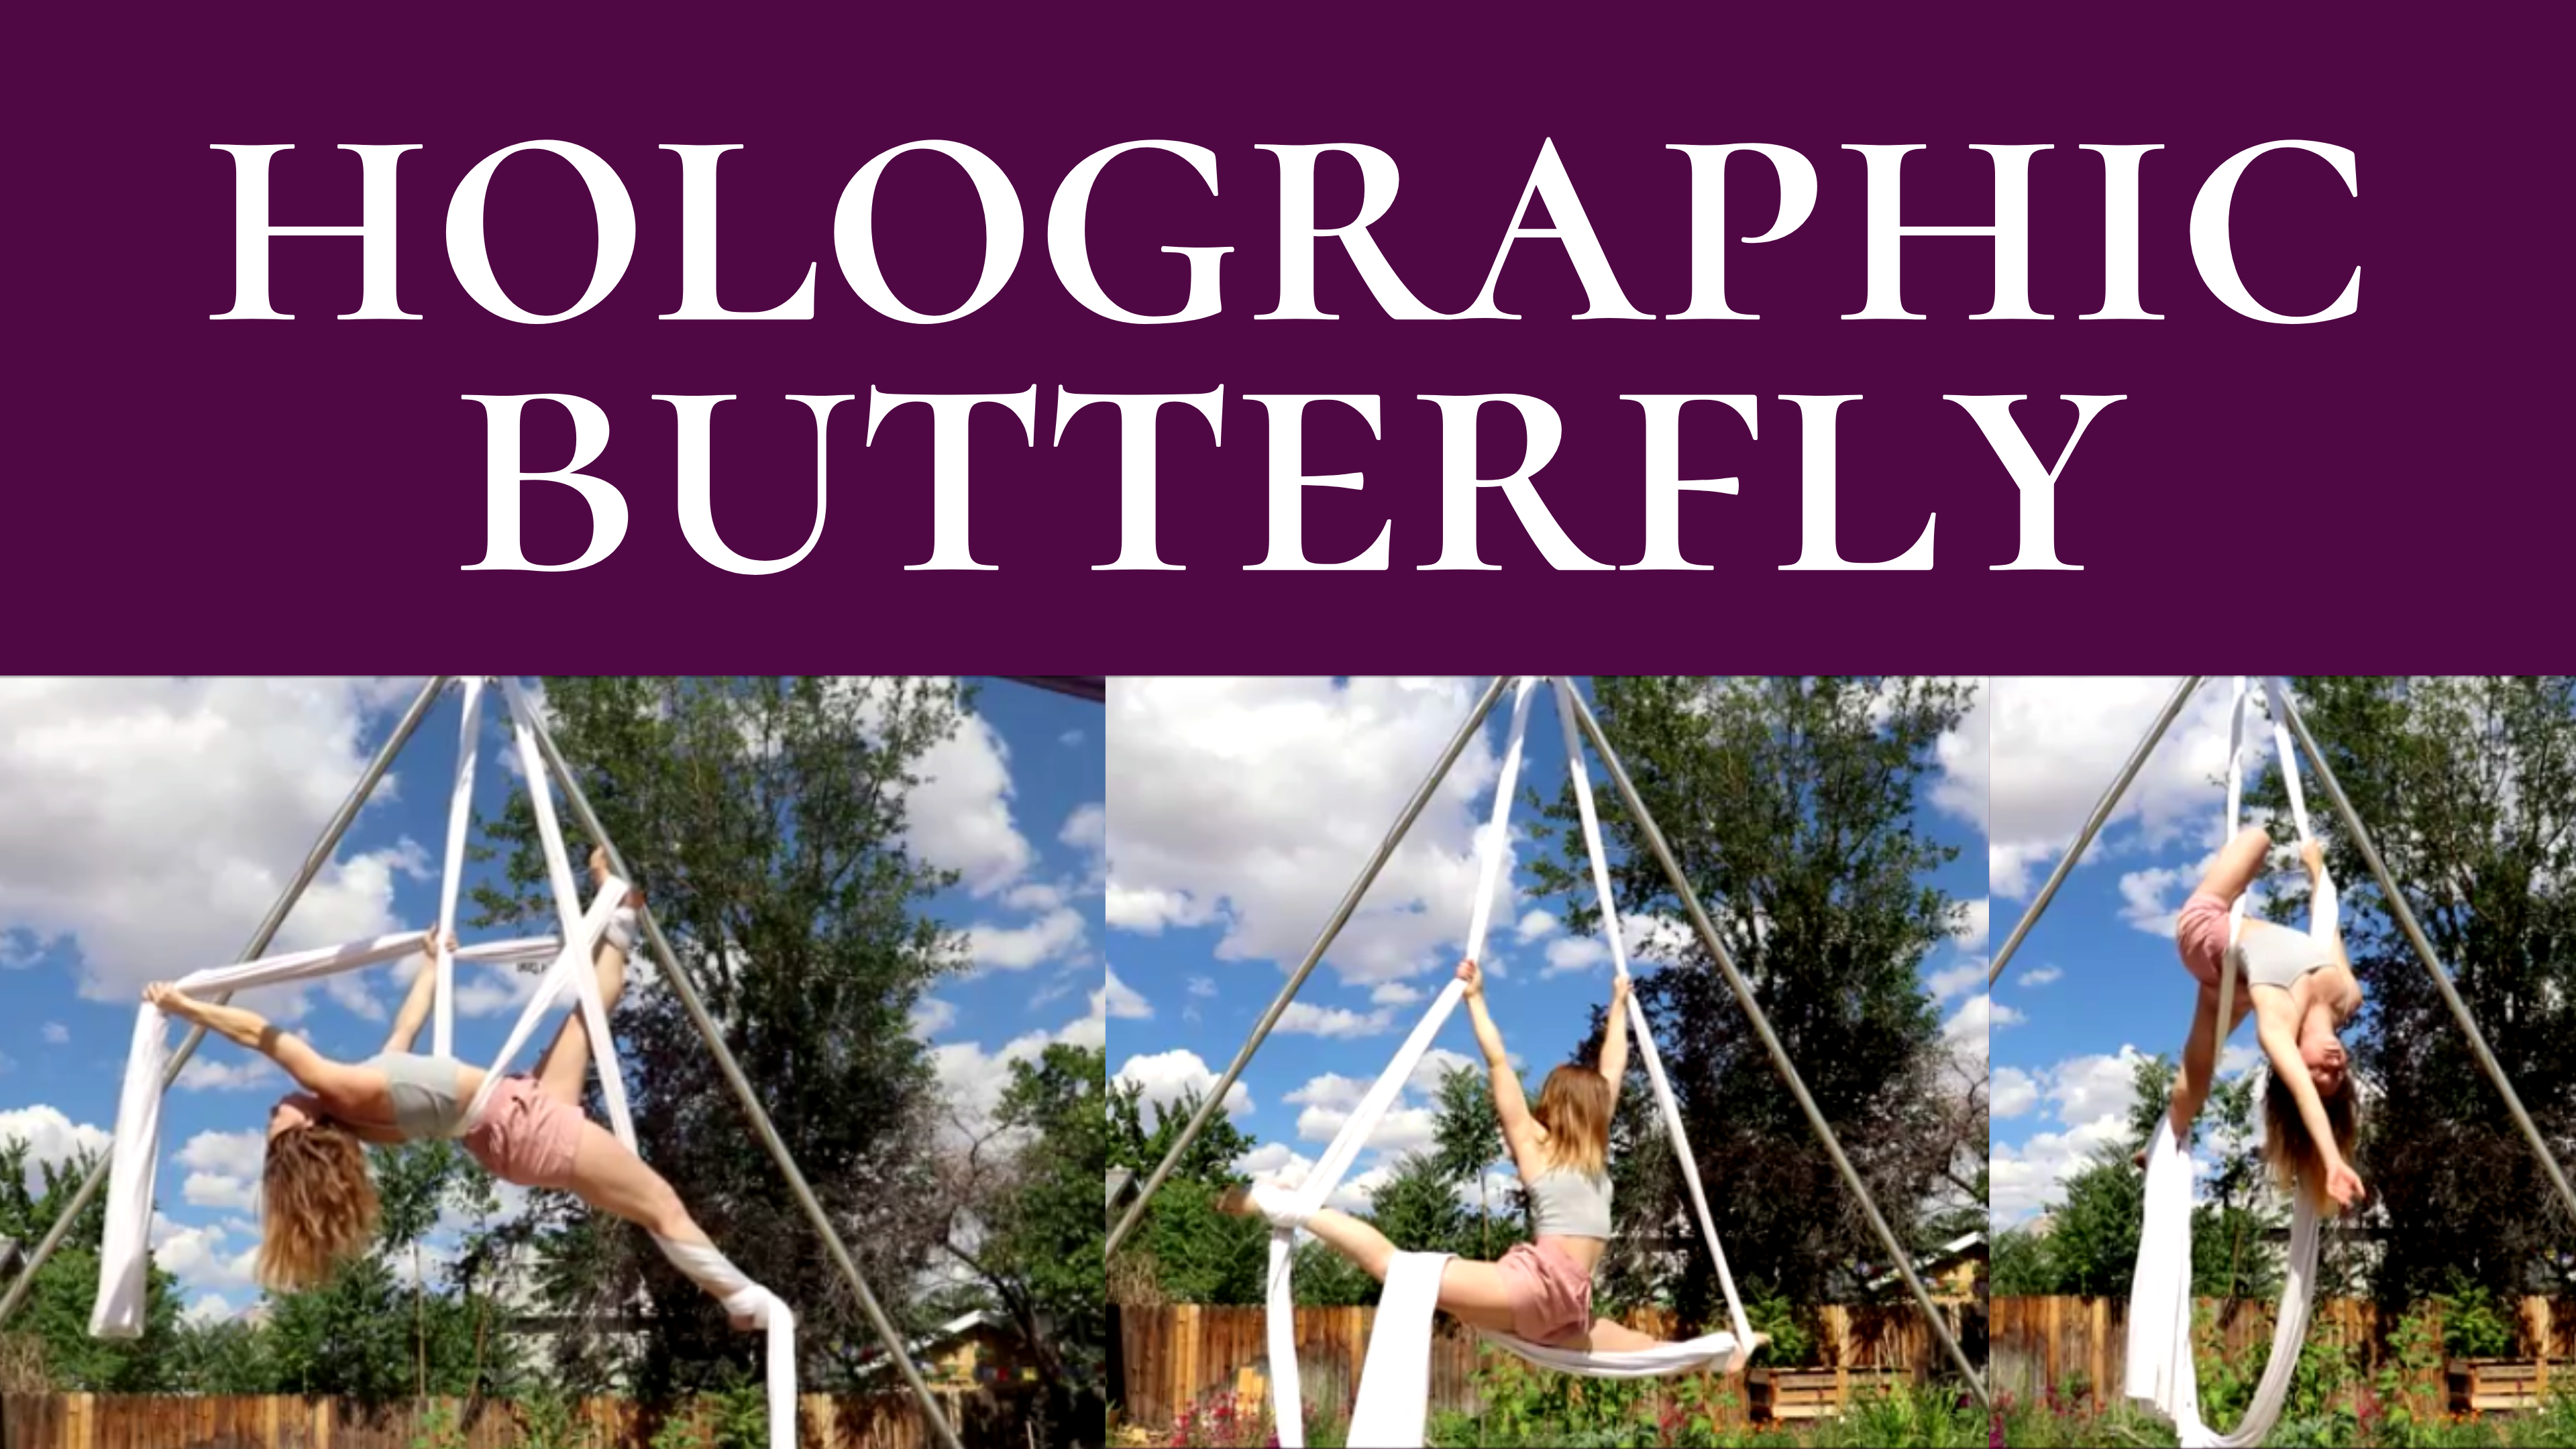 Holographic Butterfly – A Creation Story